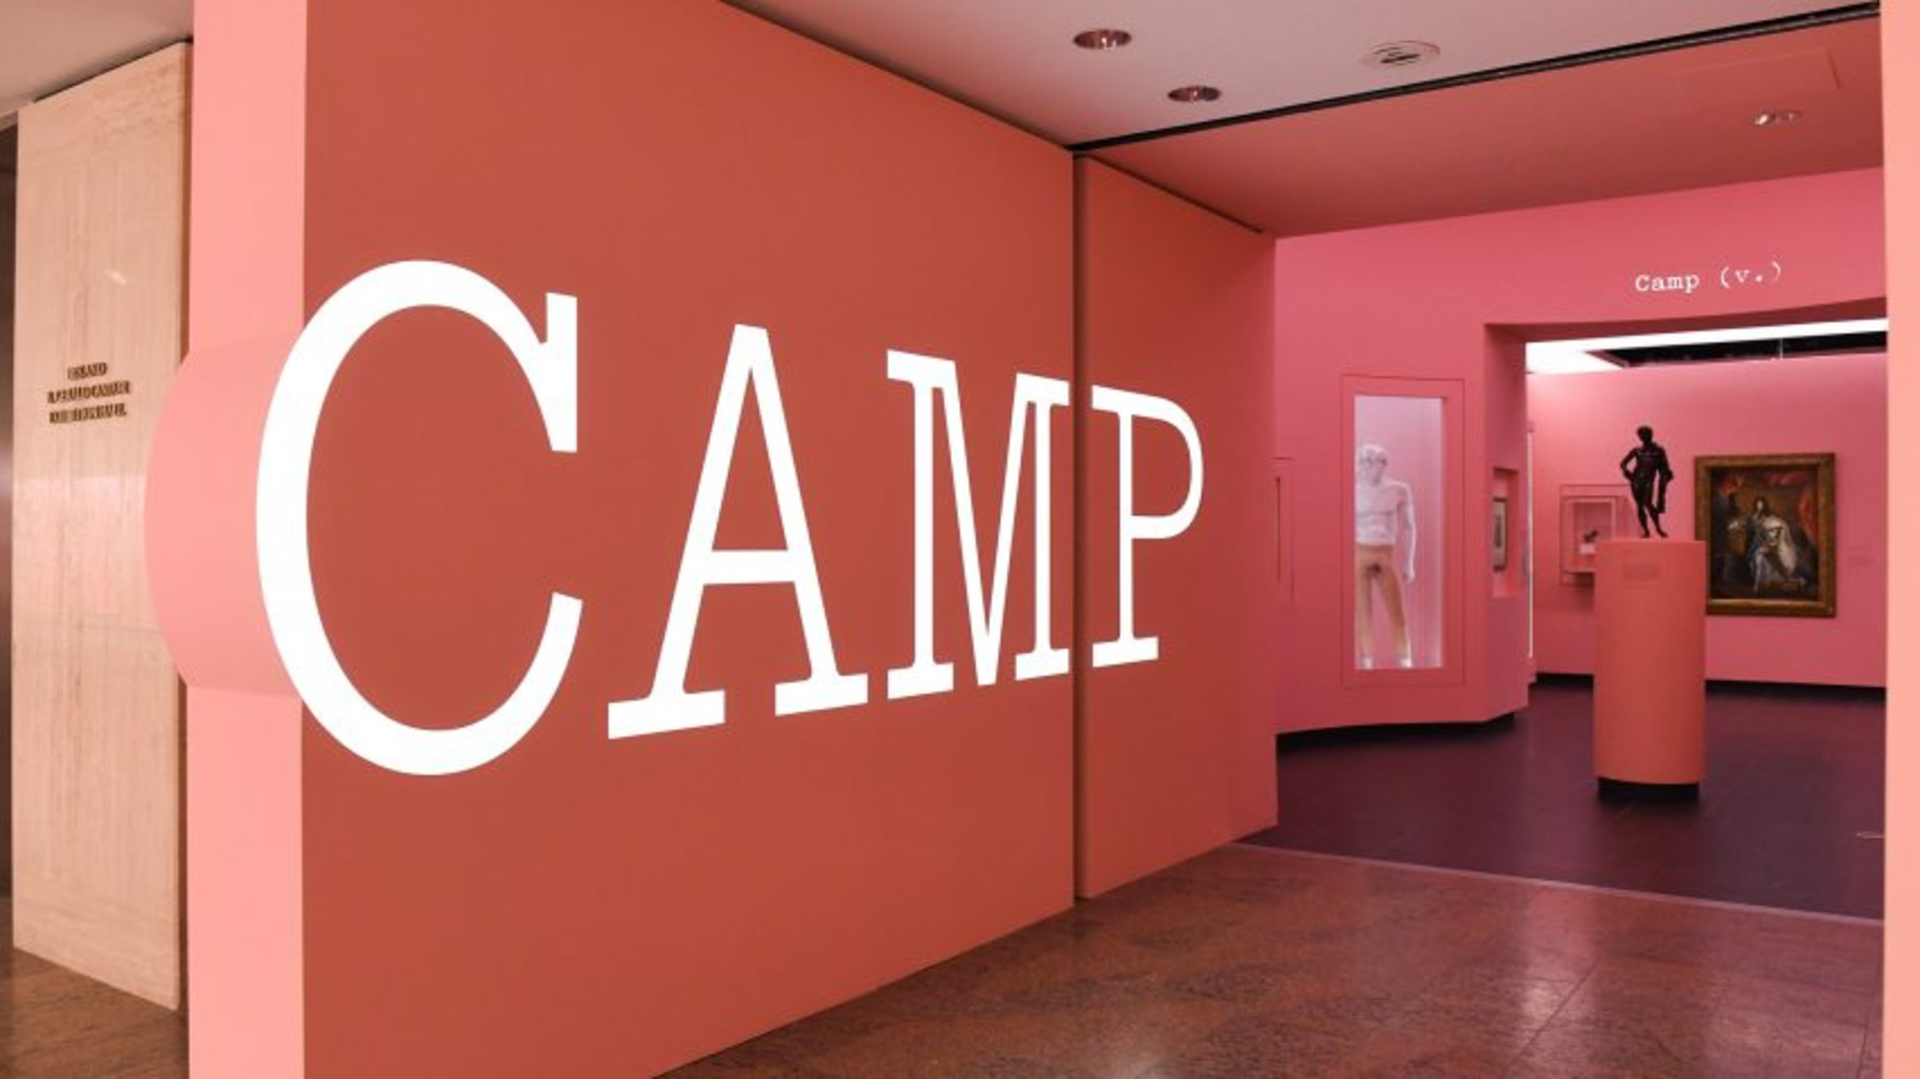 Of Wheres And Wears - met-camp-notes-on-fashion-design-exhibit-new-york-city-usa_dezeen_2364_hero3-852x479